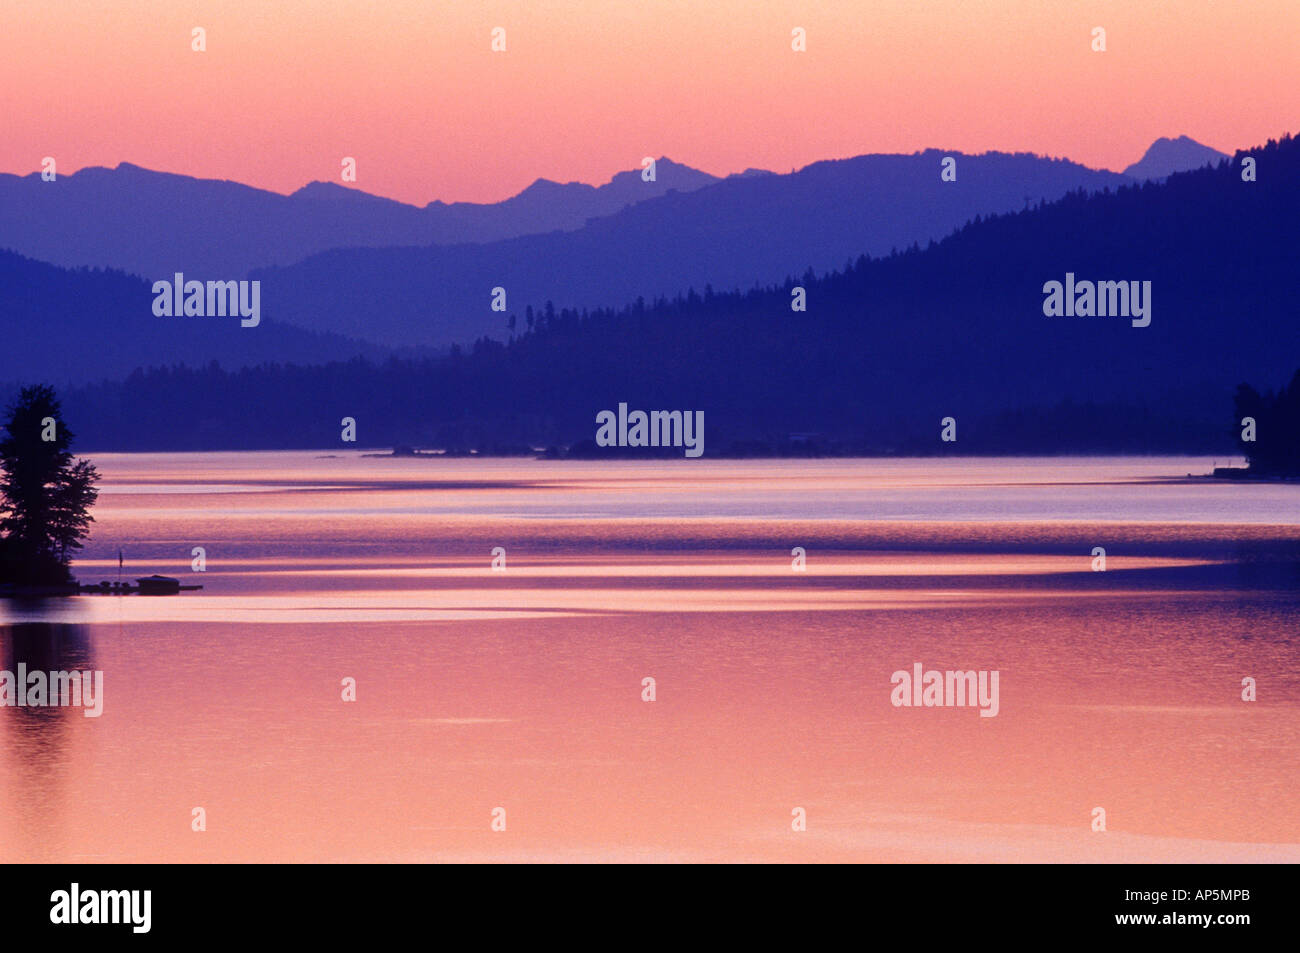 Lake Pend Oreille near Sandpoint Idaho - Stock Image